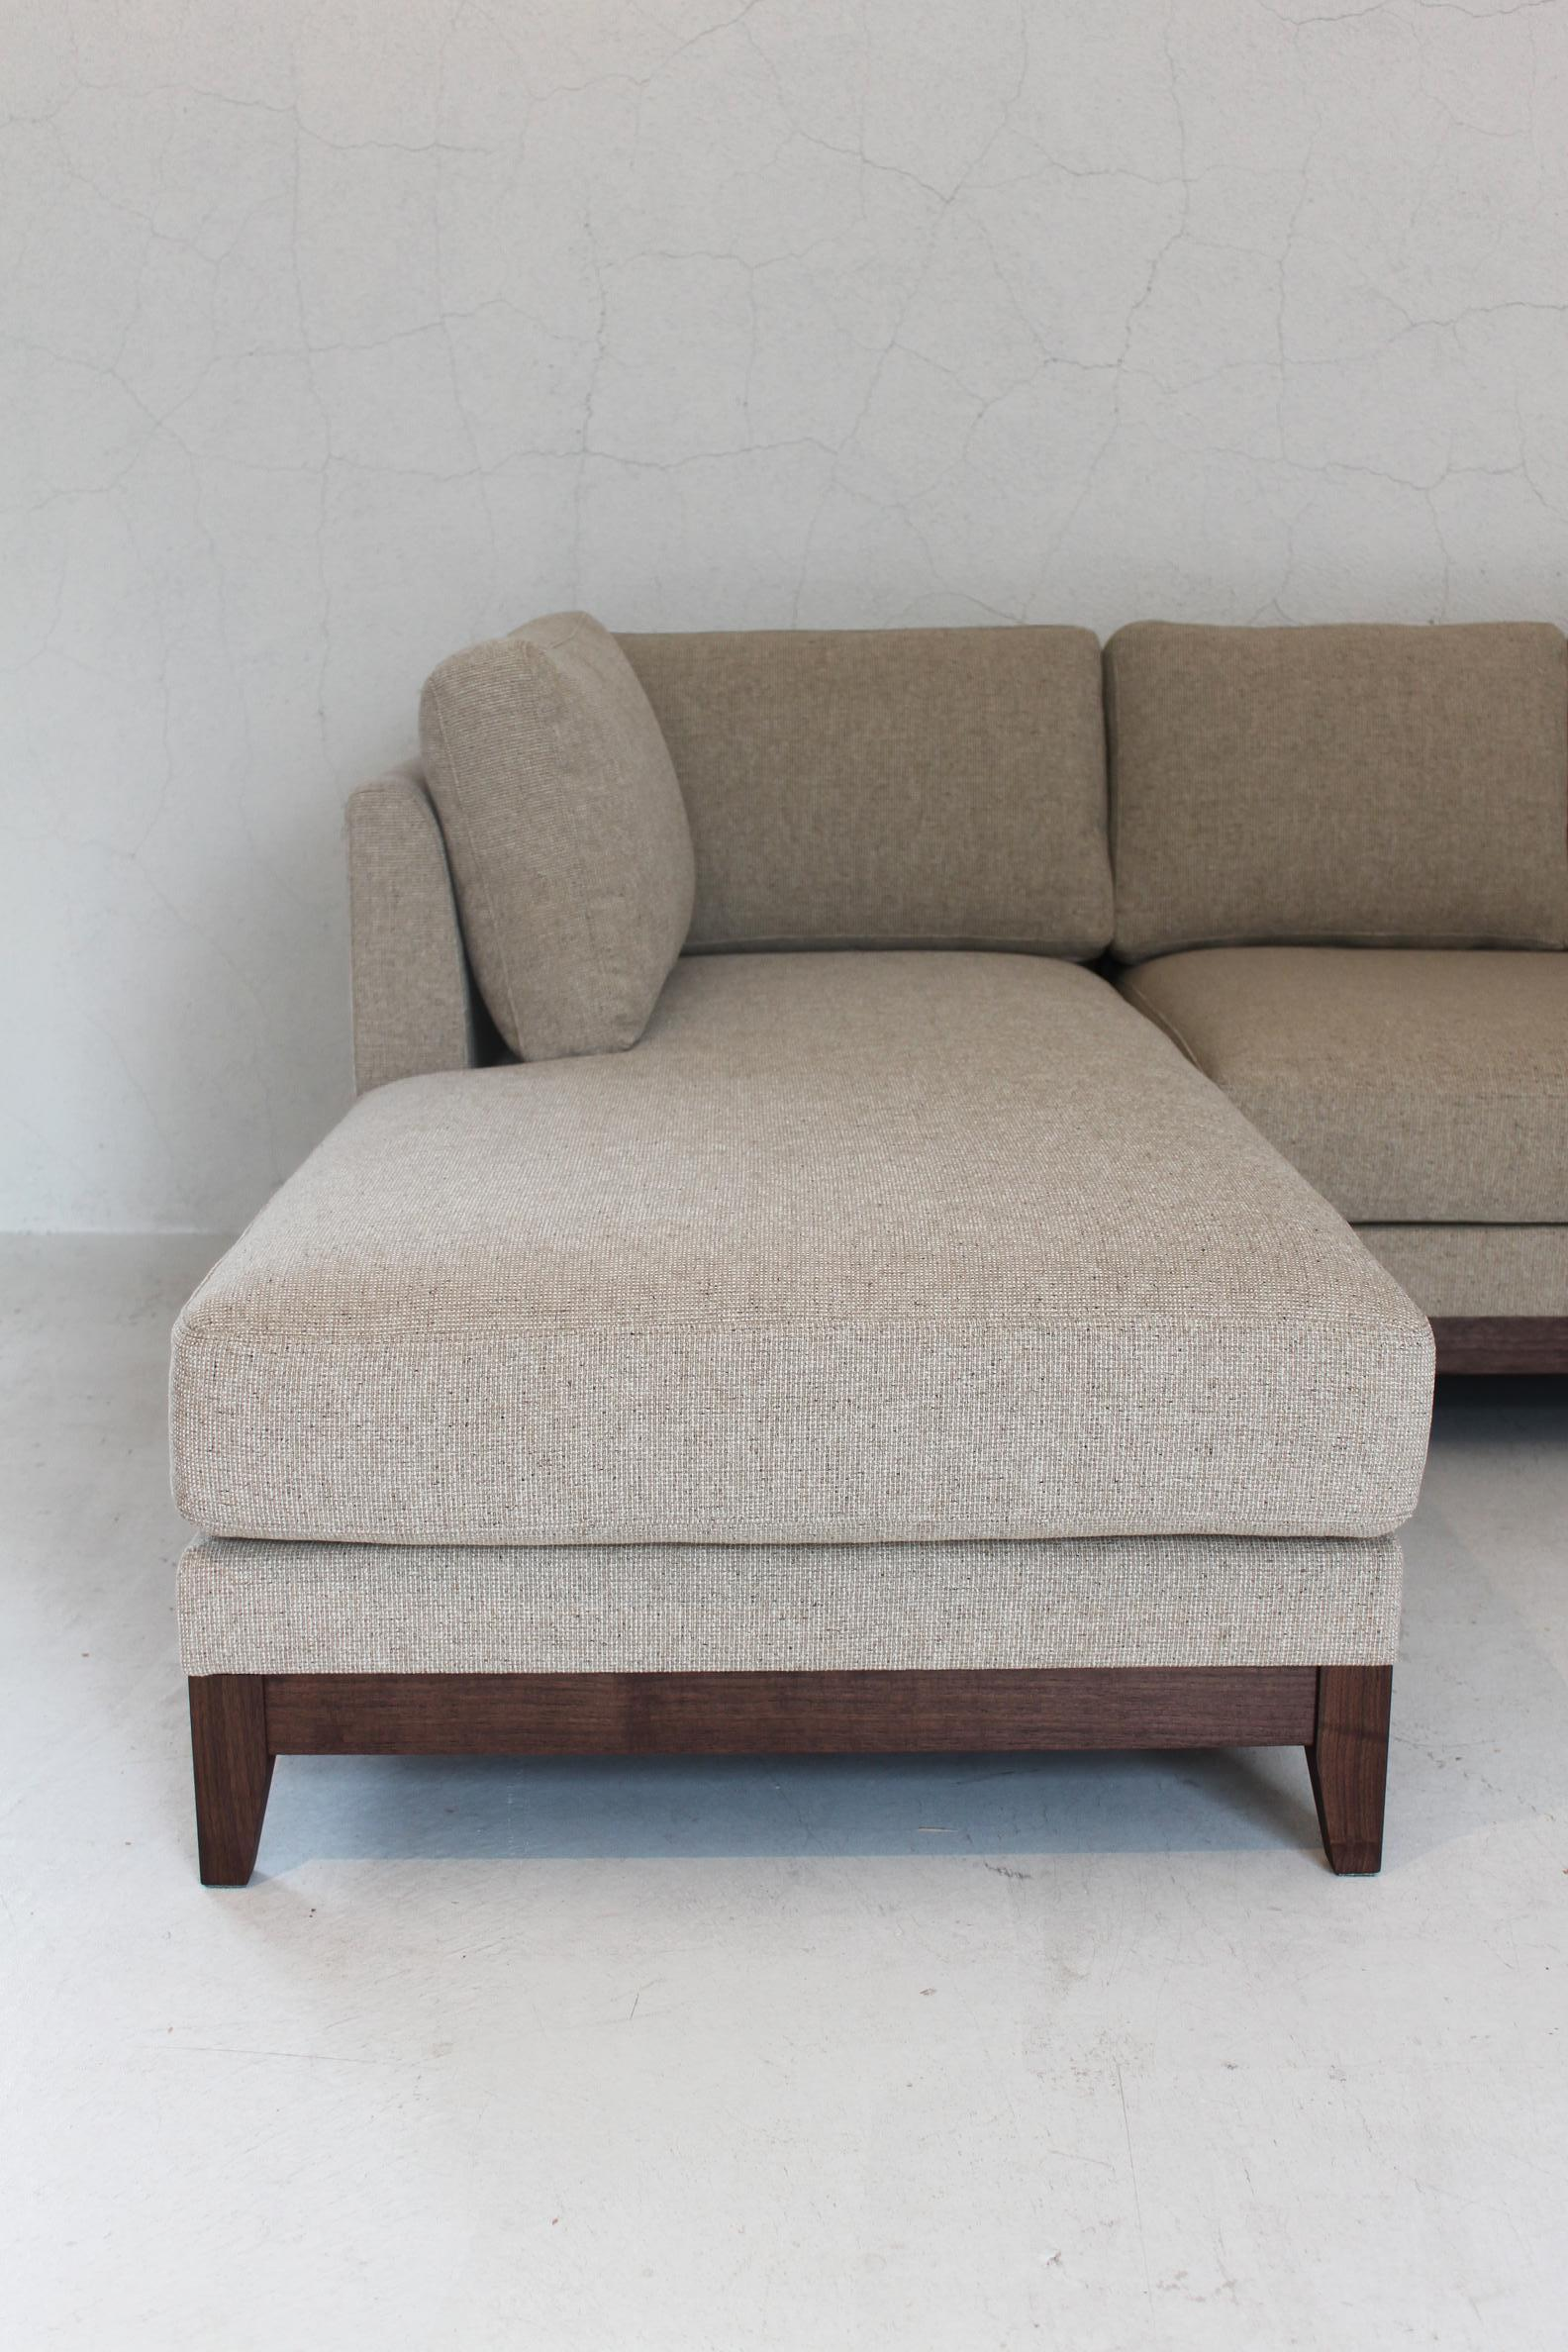 IW COUCH SOFA_c0146581_1765538.jpg